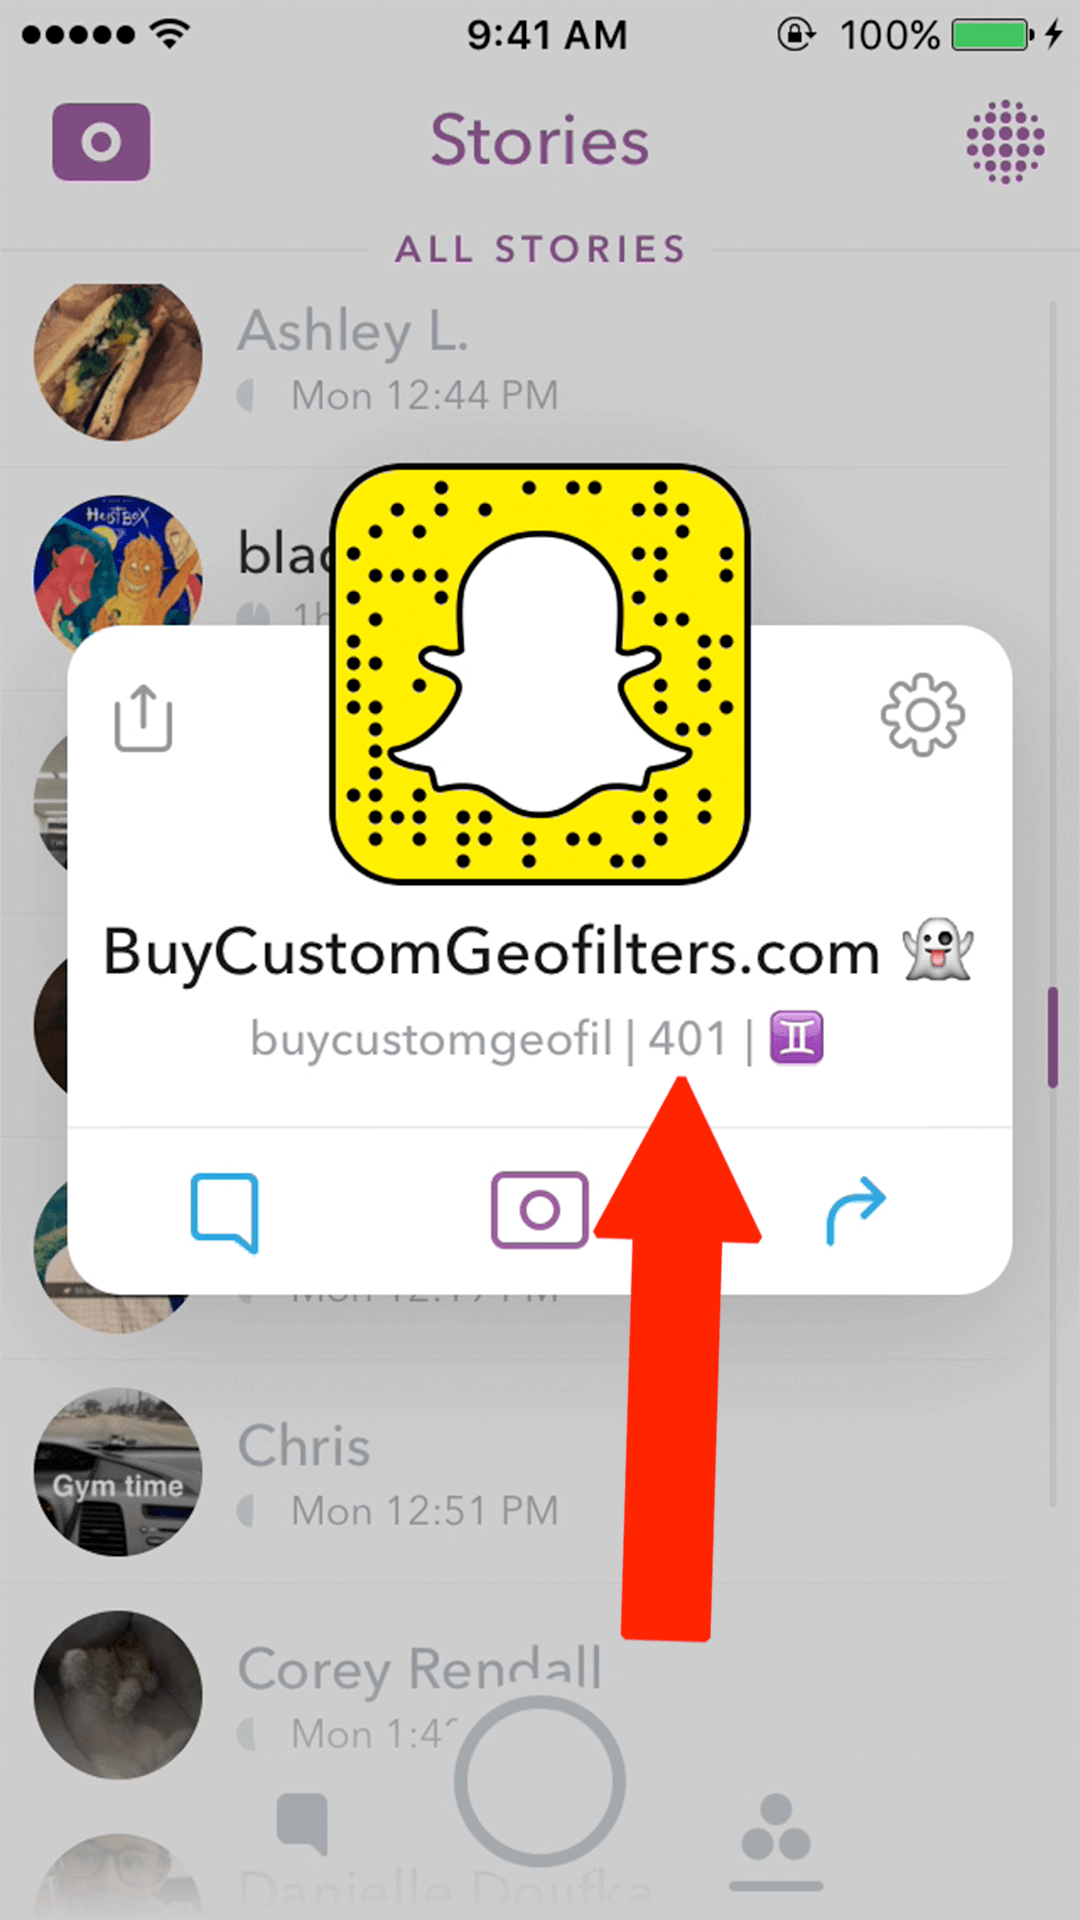 mutual-snapchat-friends-trick-buycustomgeofilters-png